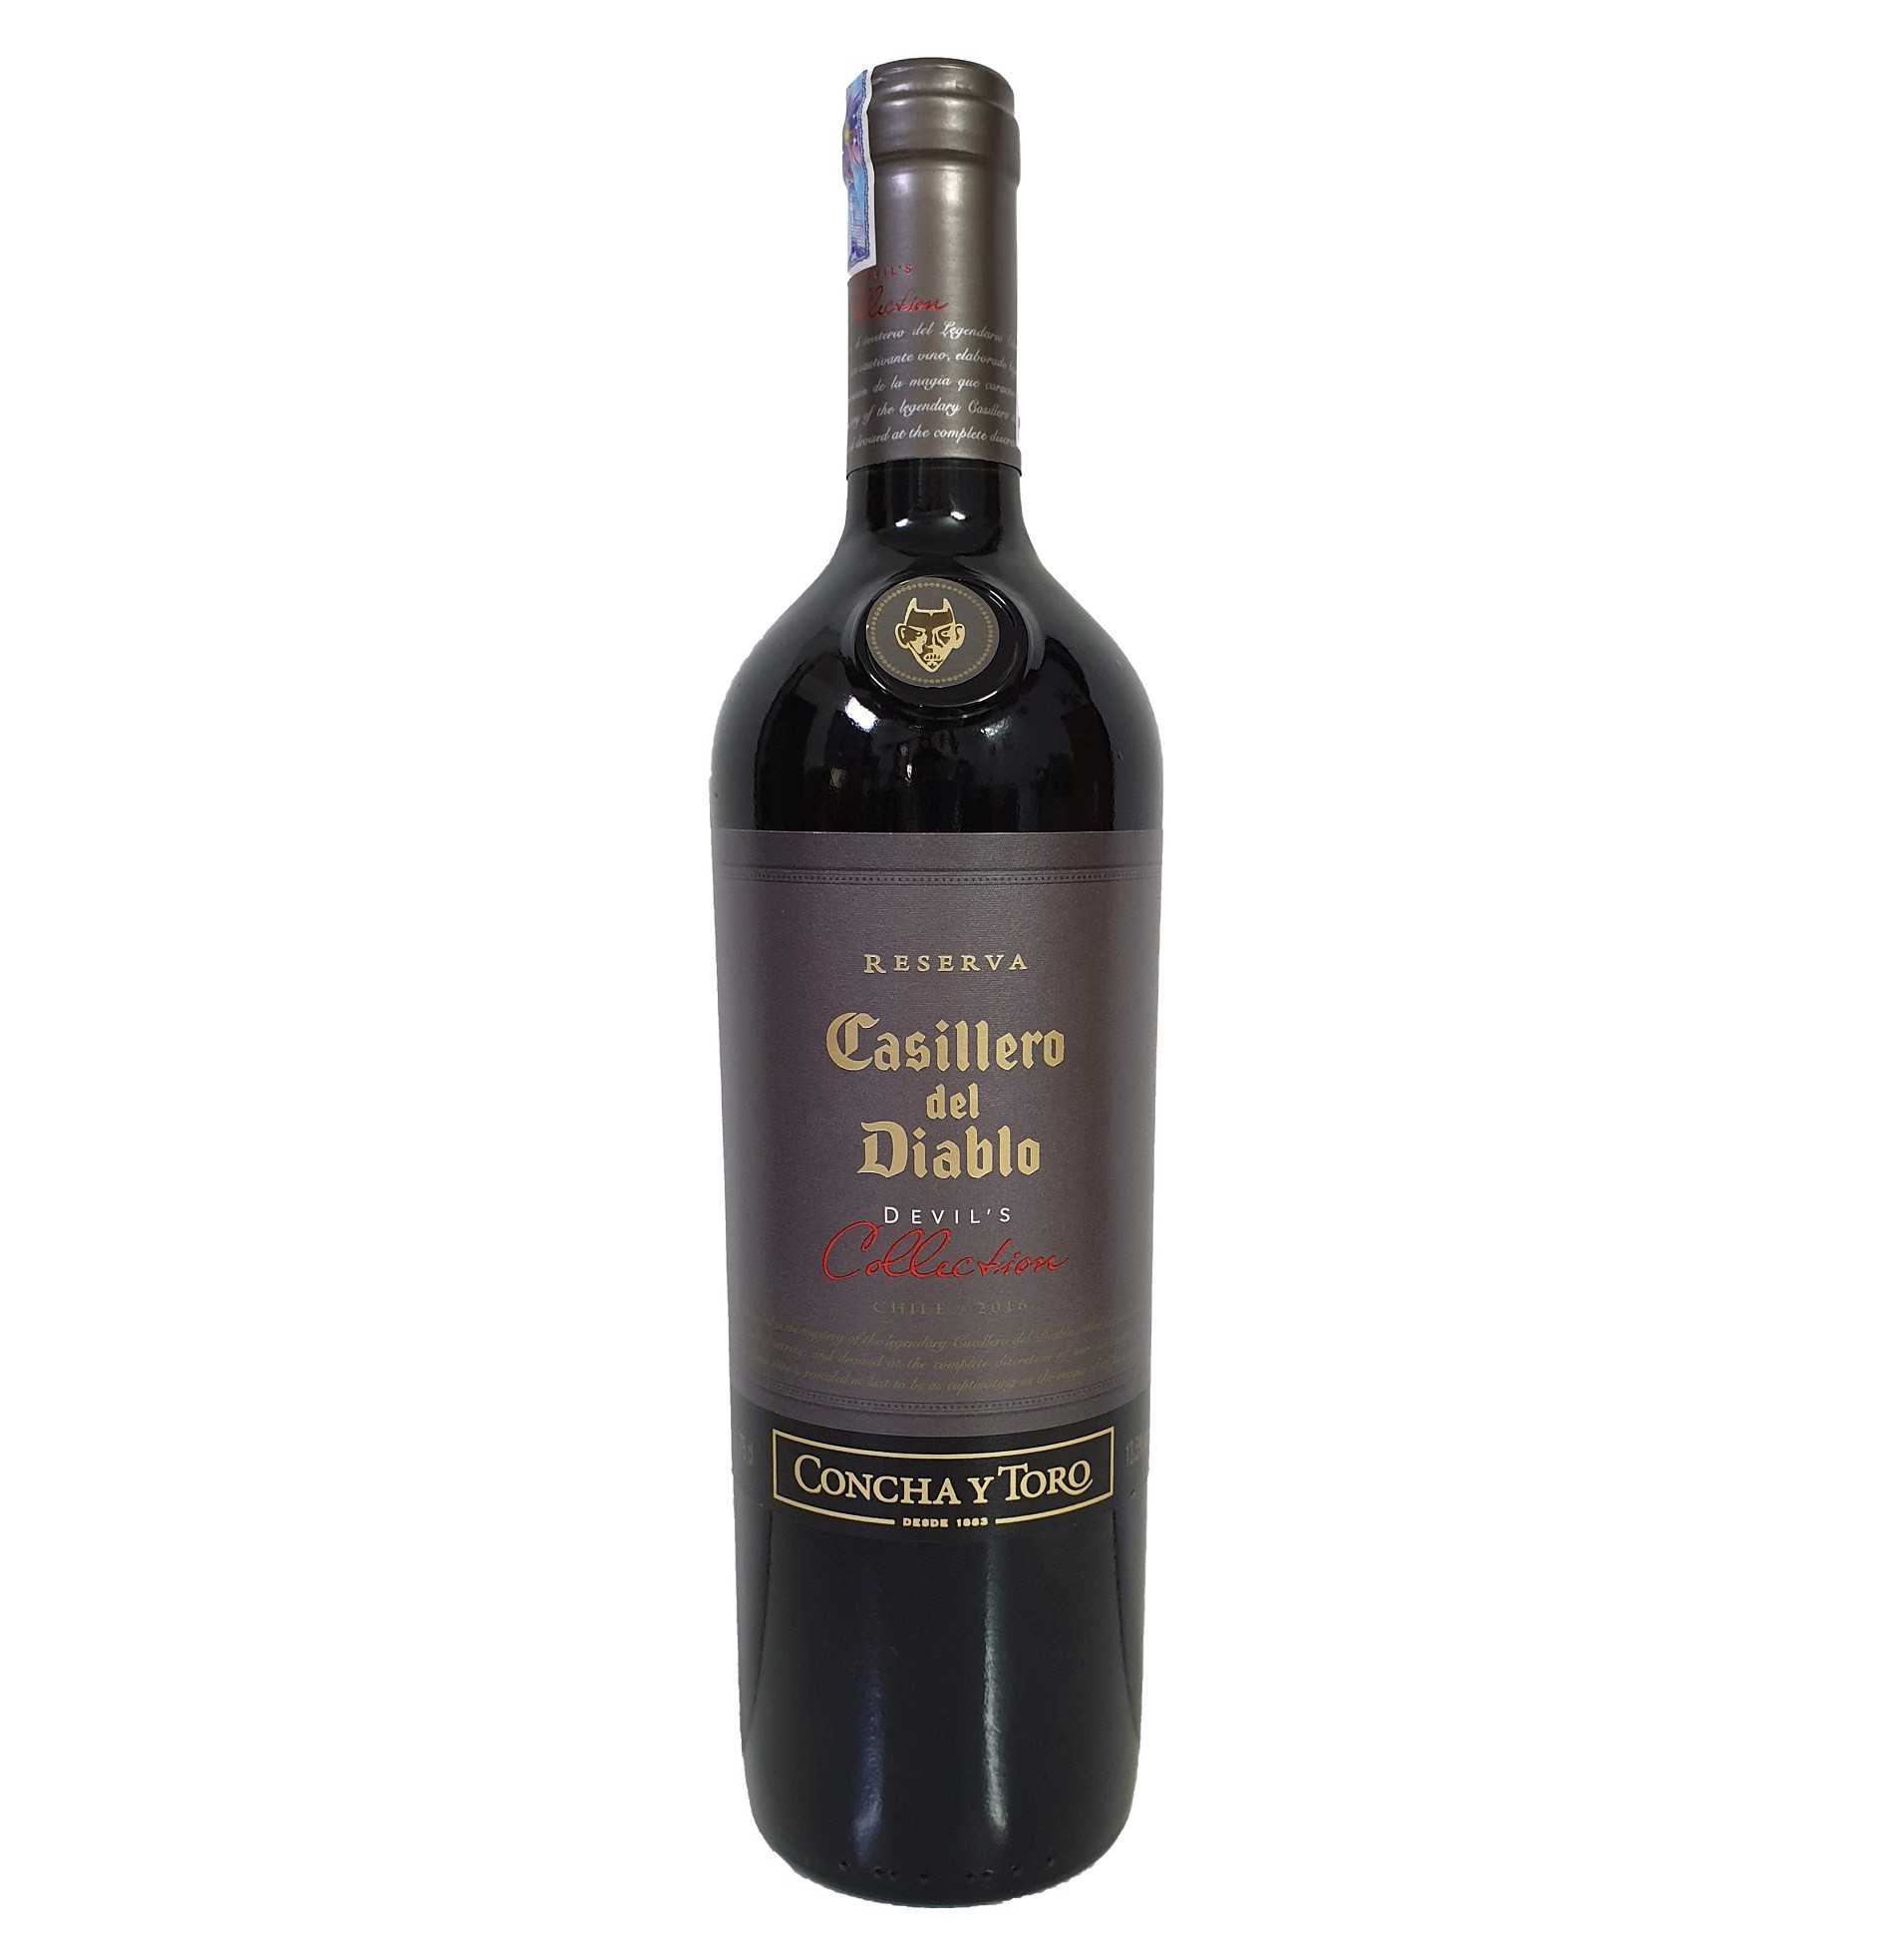 Casillero del Diablo Devil's Collection Reserva